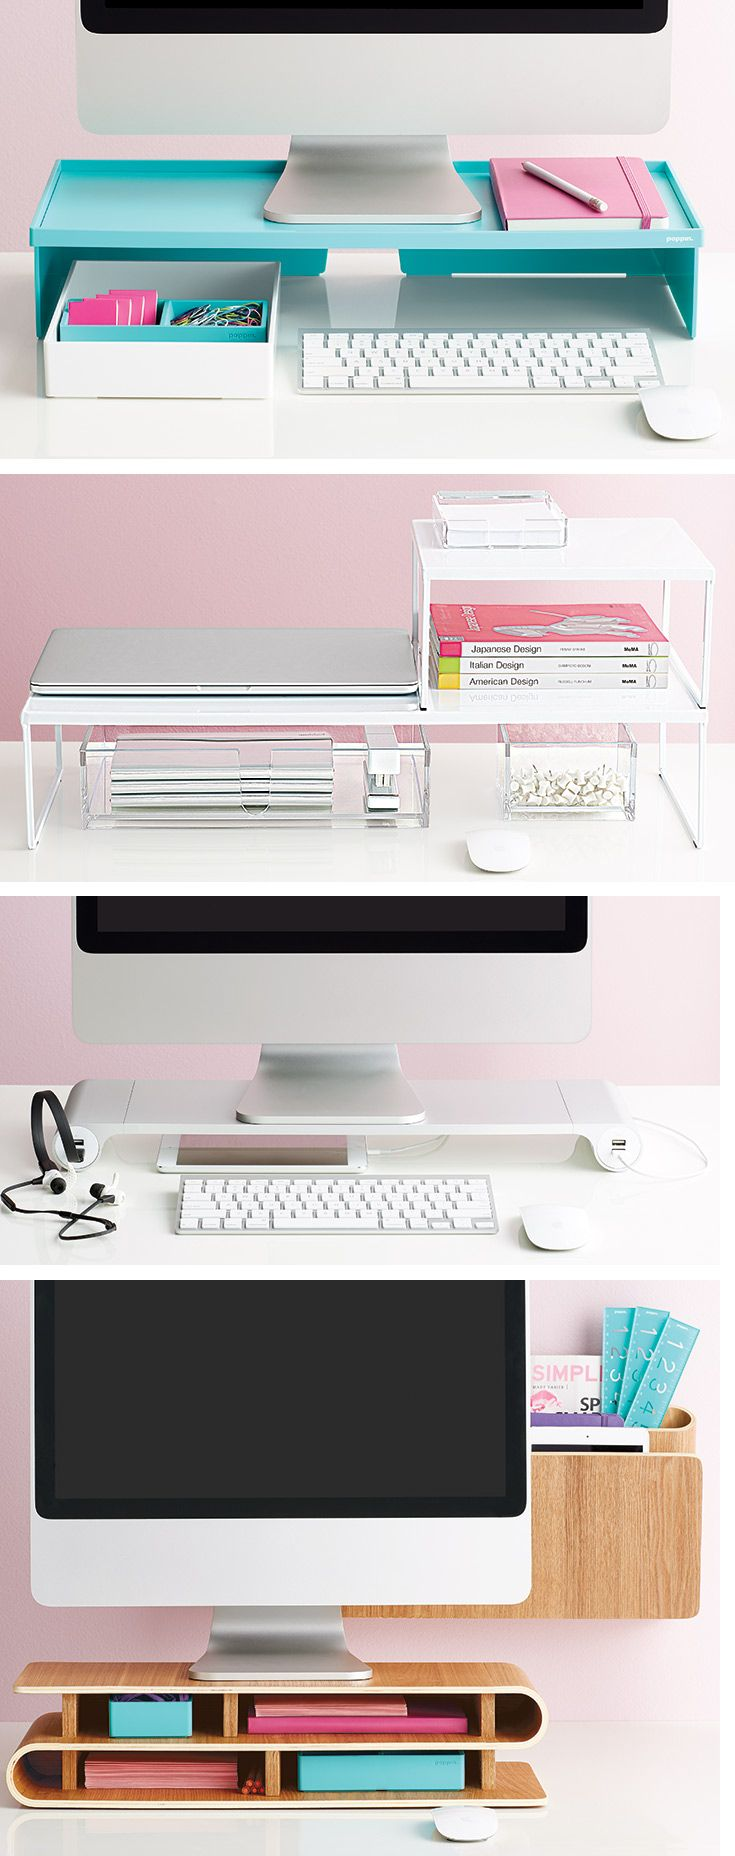 Organize Every Desk Setup With Creative Options From The Container Store!  This Is A Great Storage Idea For Stationery, Craft And Office Supplies!